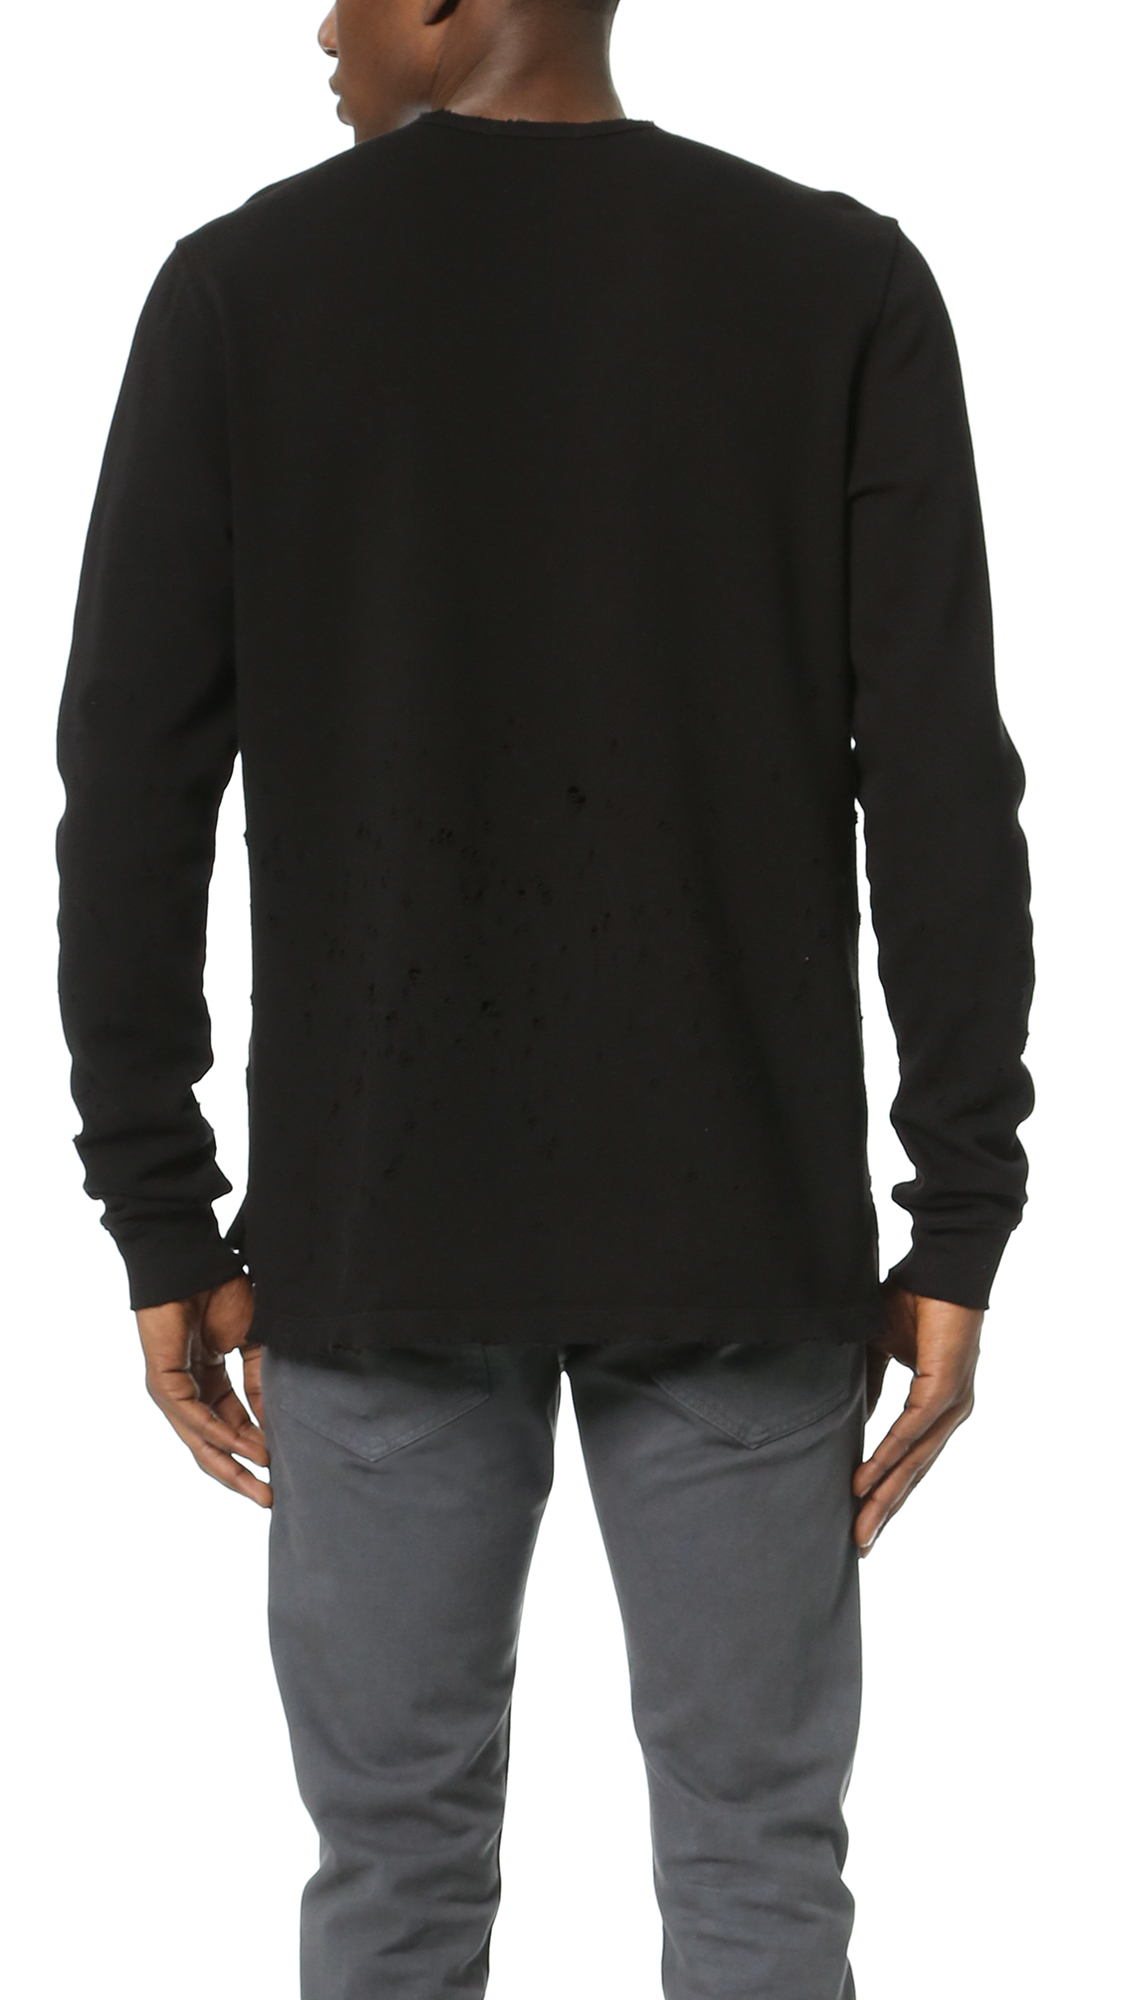 Cotton citizen The Malibu Crew Sweatshirt in Black for Men  Lyst